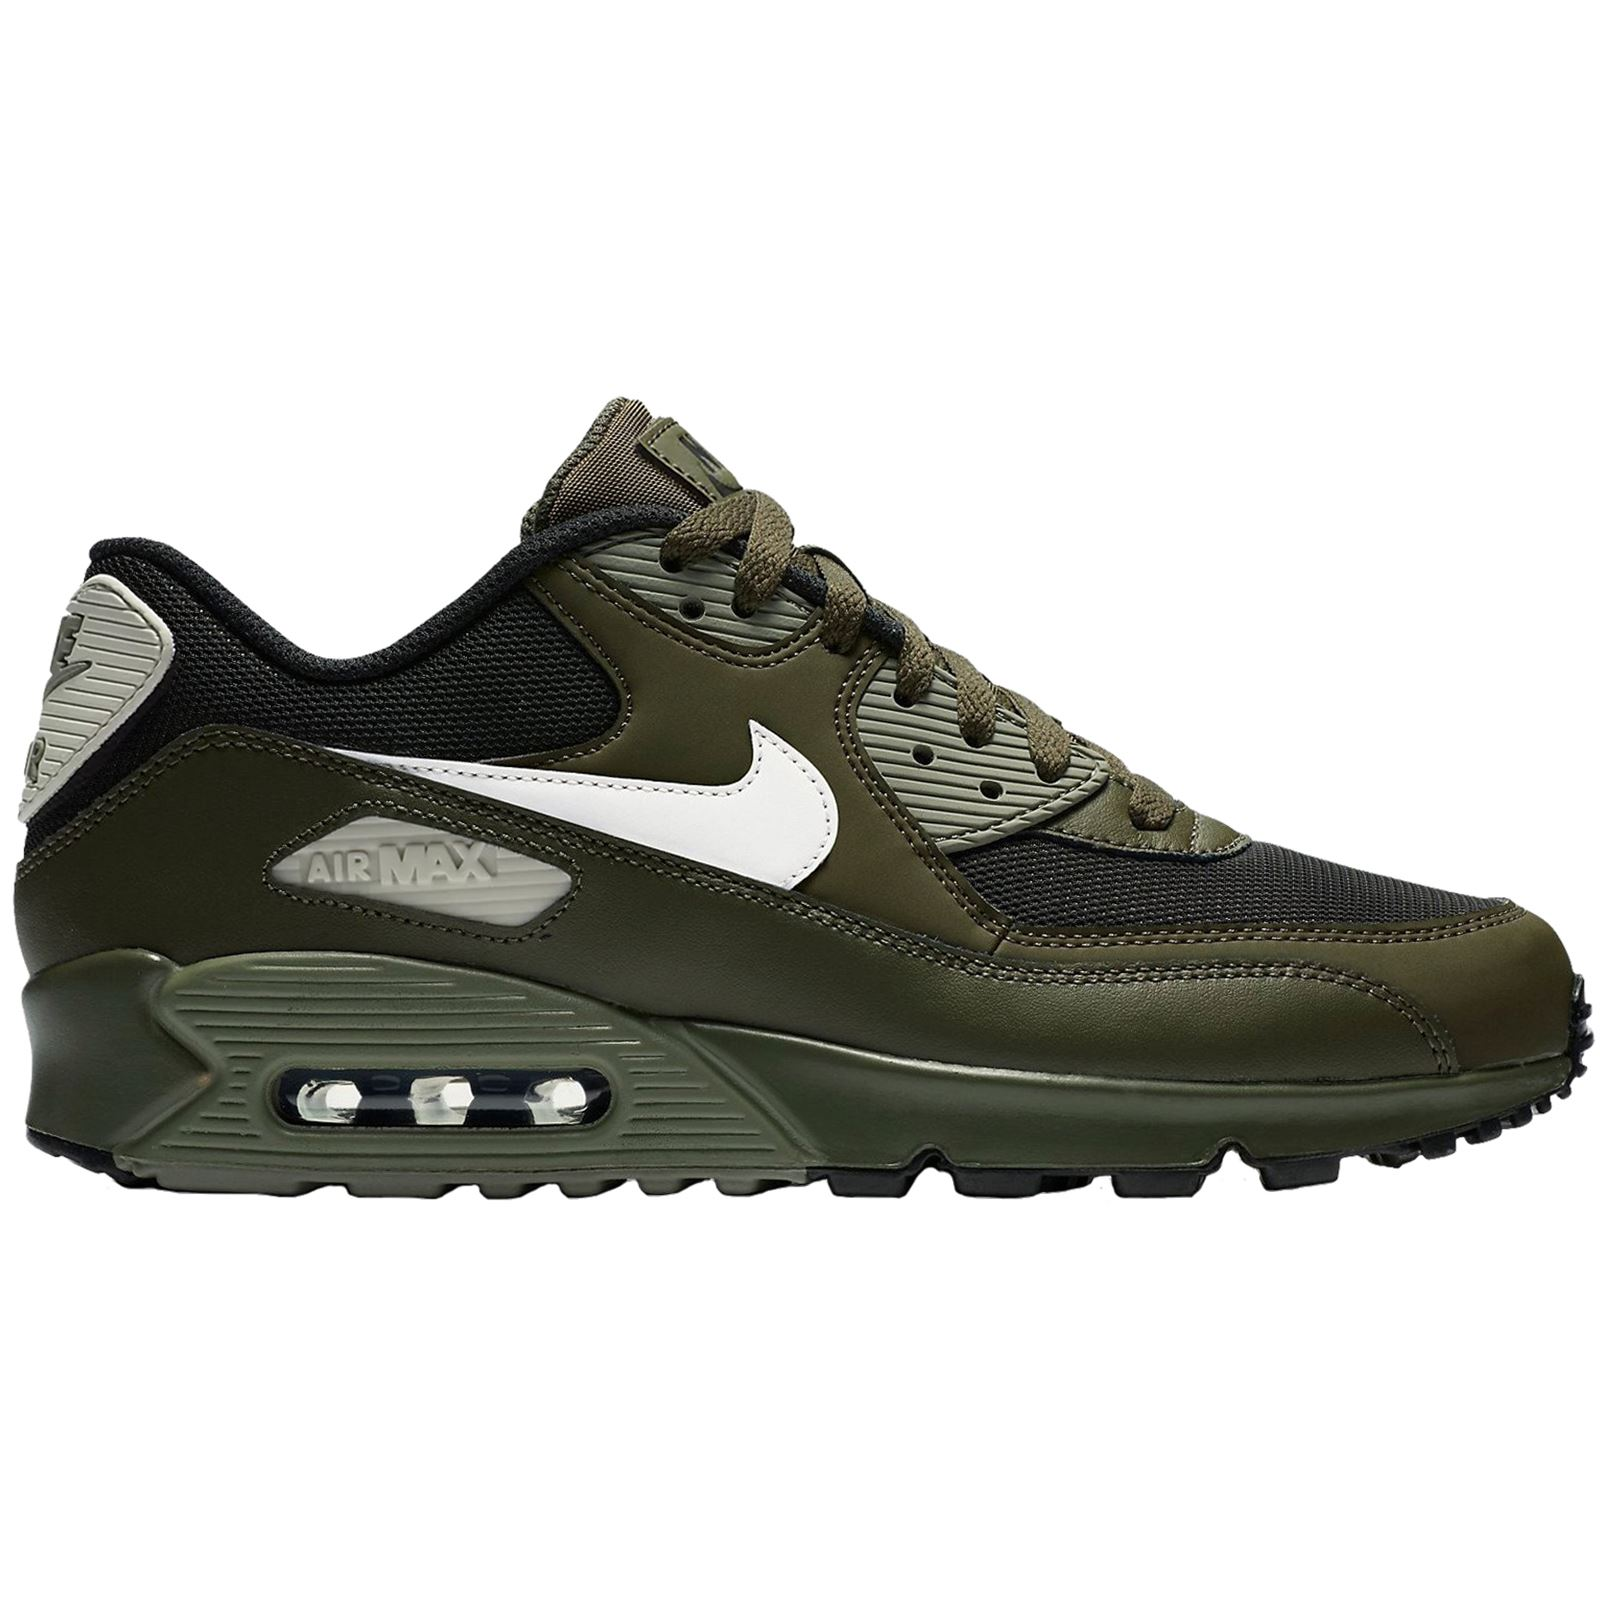 Nike Air Max 90 Essential Cargo Khaki Men Leather Mesh Max Air Sneakers Trainers